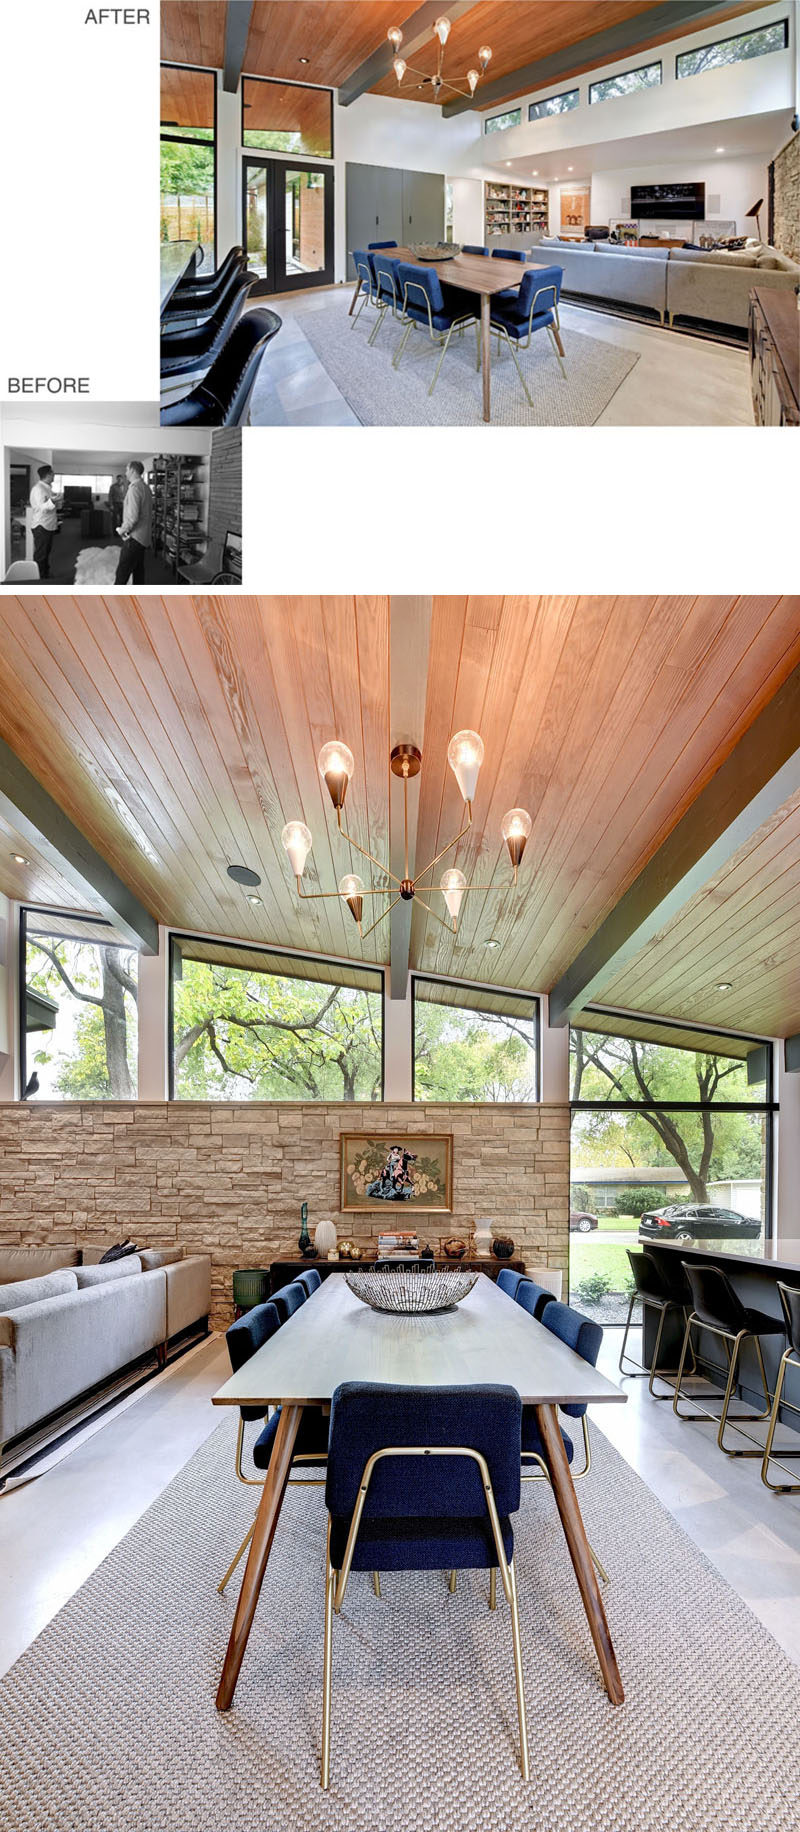 BEFORE + AFTER - Separating the living room and the kitchen of this remodeled mid-century home, is the dining room. Angled wood ceilings allow for natural light to be added to the dining area, while a chandelier draws the eye upwards to the exposed ceiling. #DiningRoom